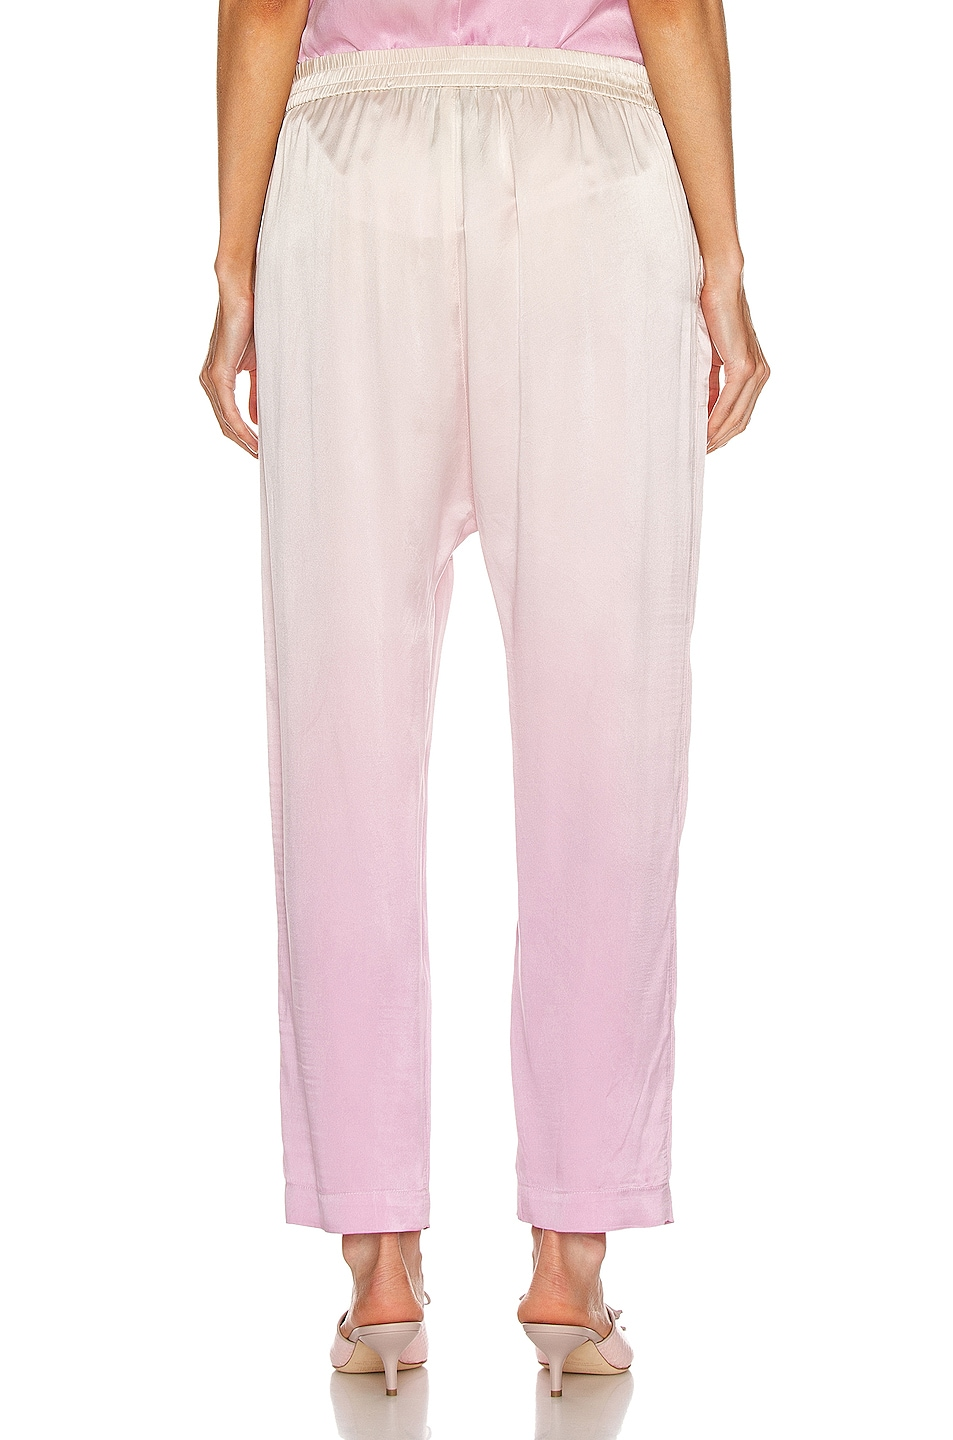 Image 3 of Raquel Allegra Sunday Pant in Orchid Tie Dye